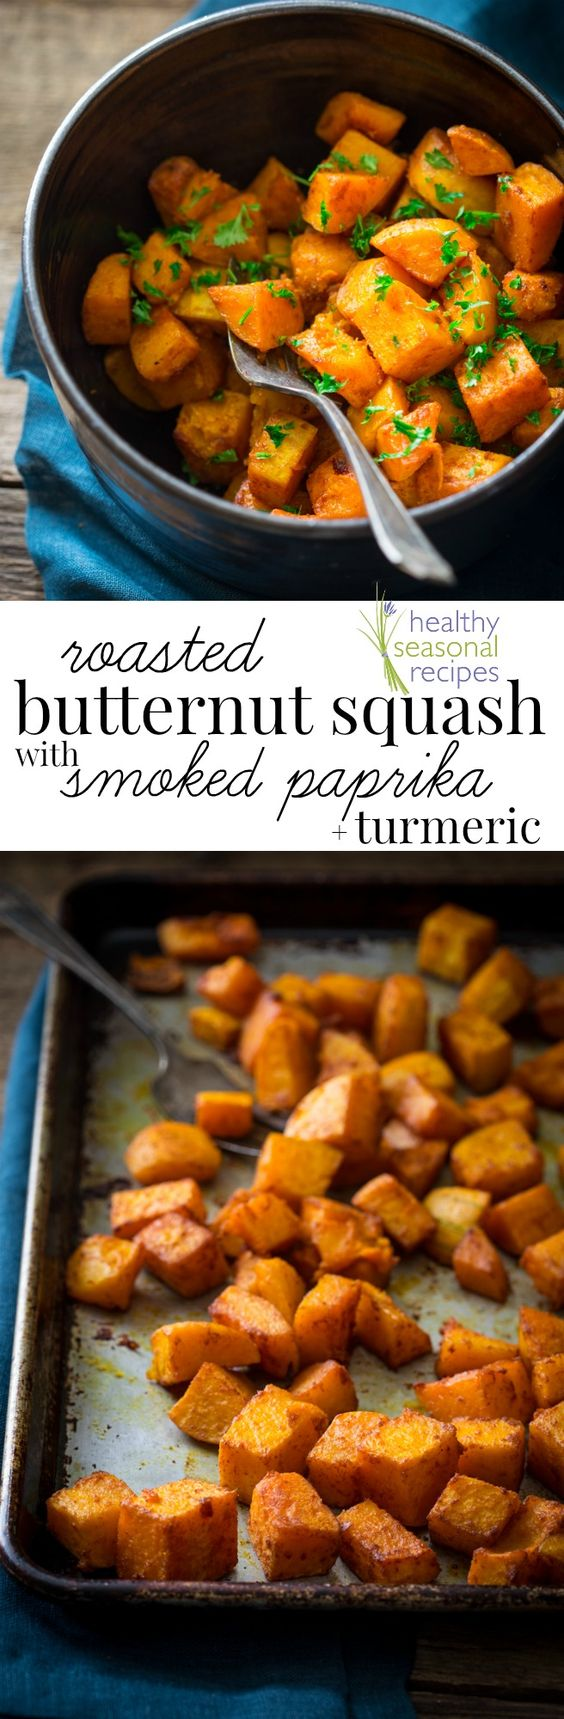 Roasted Butternut Squash with Smoked Paprika and Turmeric | Paleo and Vegan | Healthy Seasonal Recipes